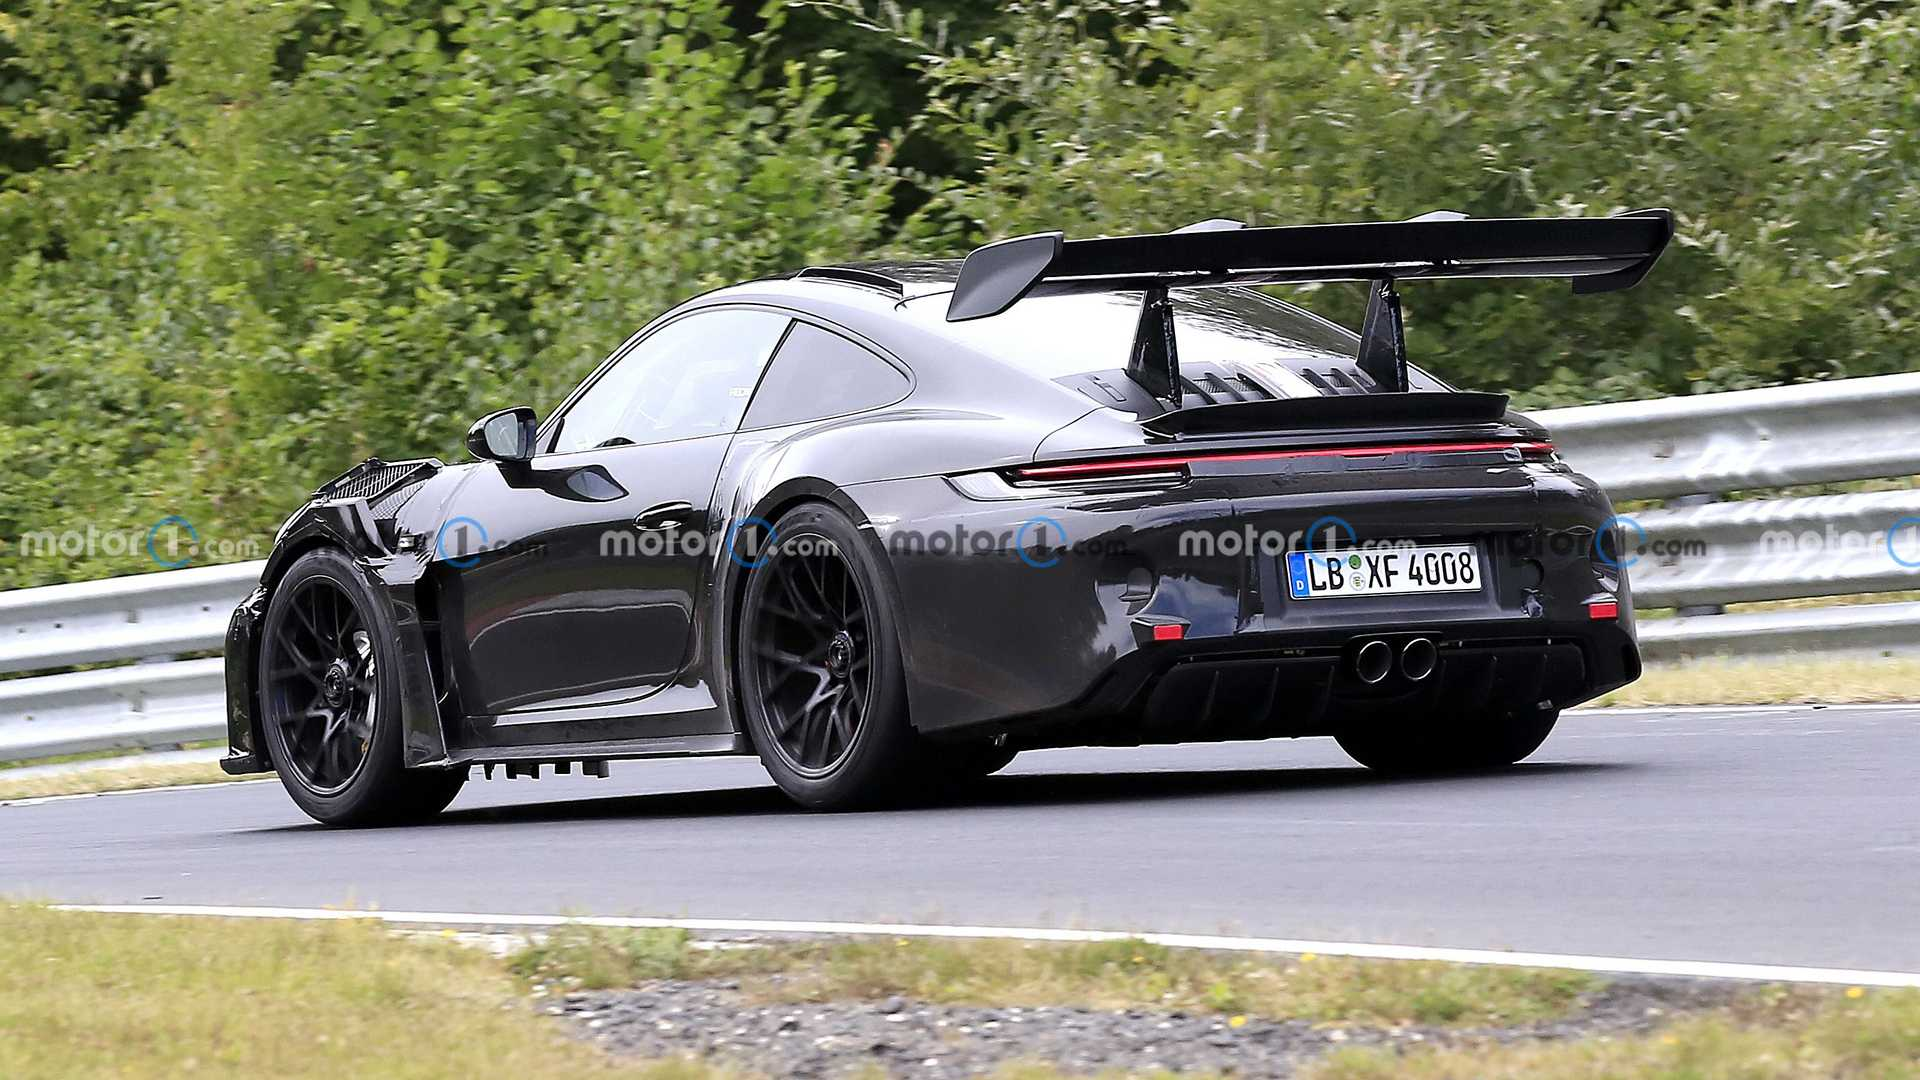 Another portion of spy shots featuring the next-gen Porsche 911 GT3 RS has surfaced online, revealing much about the car despite all the cladding.